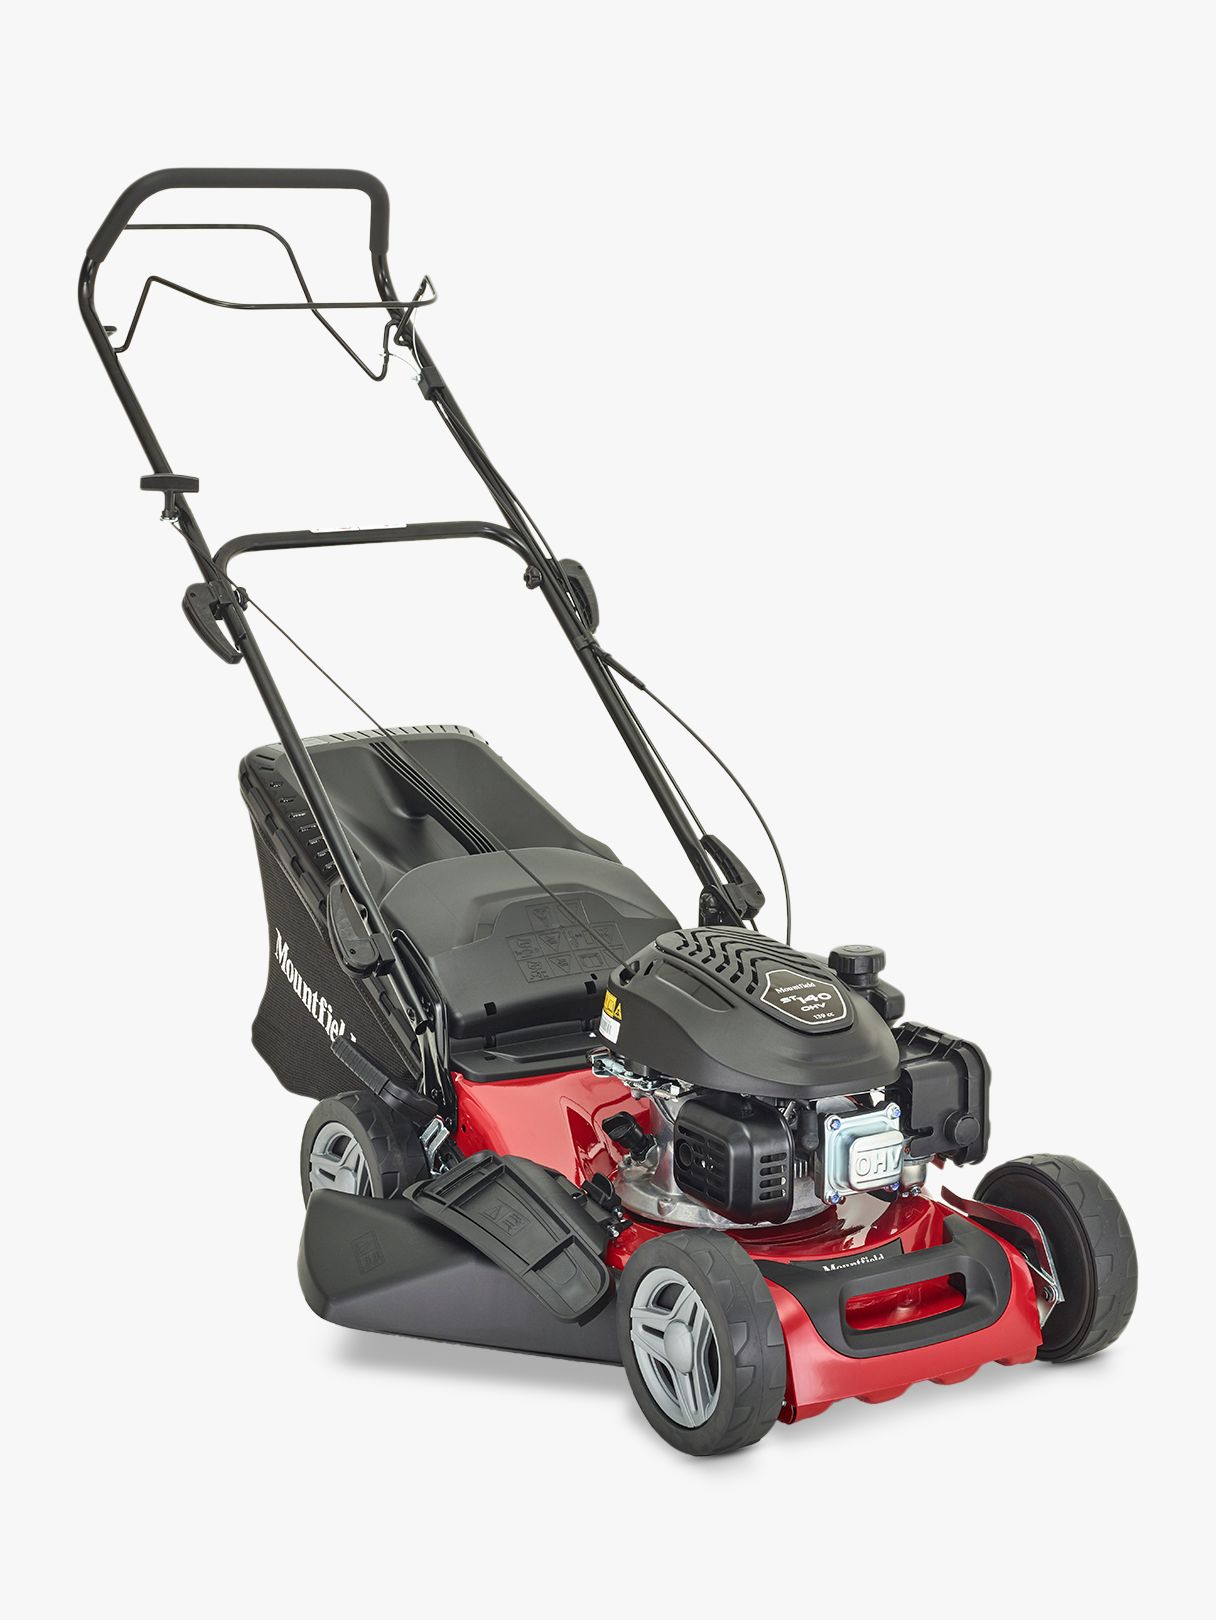 Mountfield Mountfield S421PD Self-Propelled Petrol Lawnmower, Red